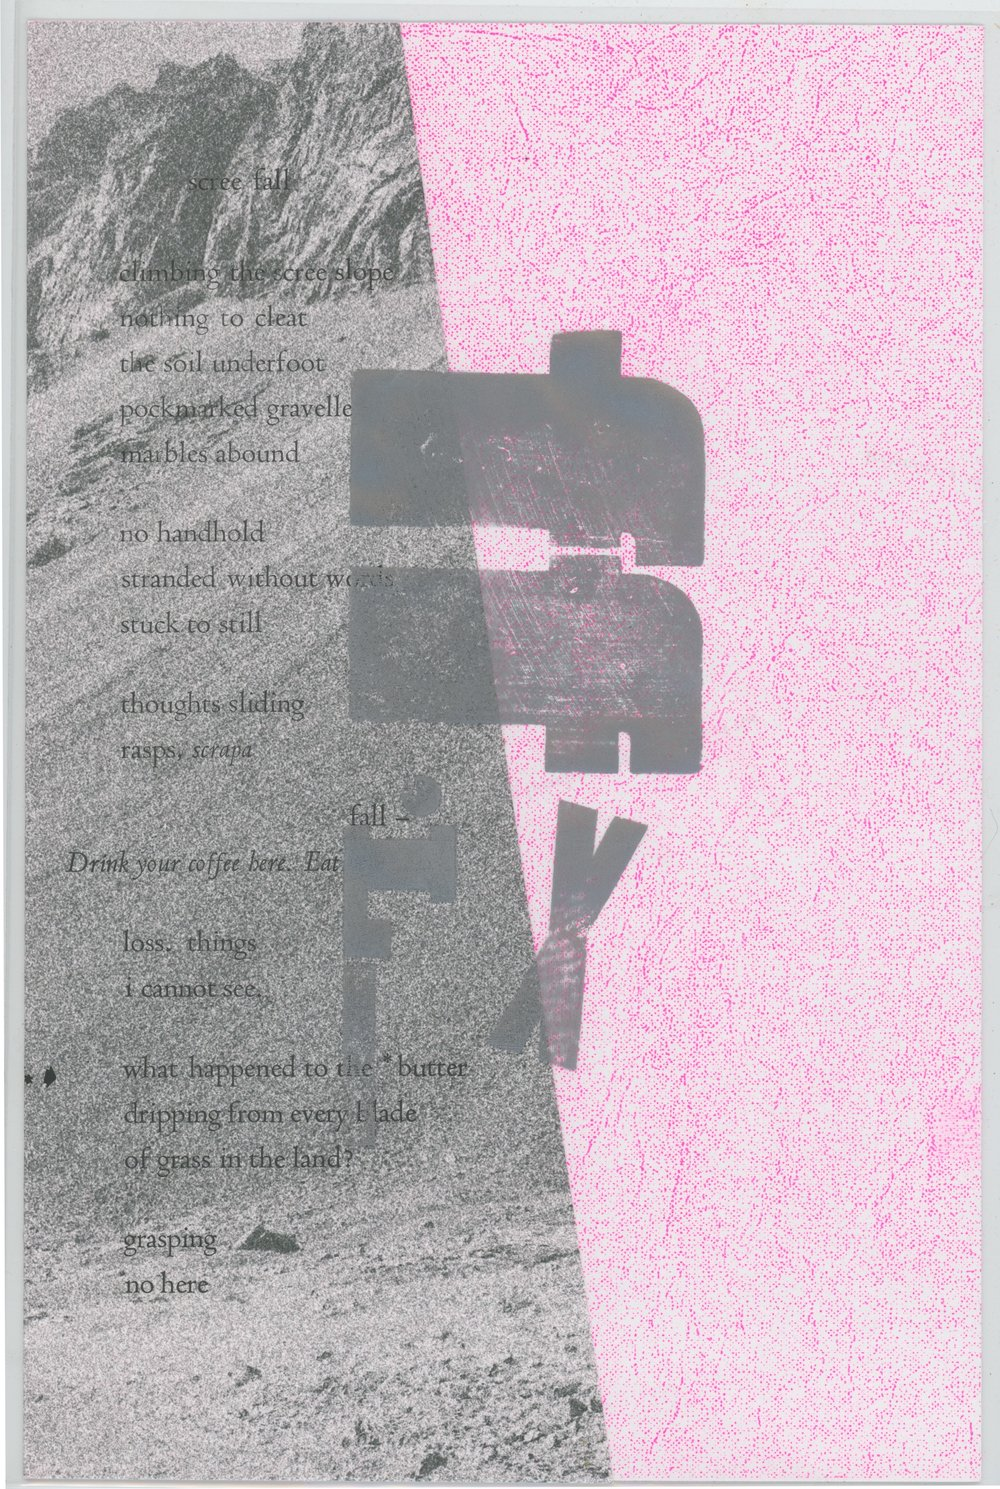 FL_X: SCREE FALL_22018 - Leaflet with Cellophane Wrap: risograph, digital, and letterpress printed on paper.7 x 11 inches (folded)11 x 17 inches (open)